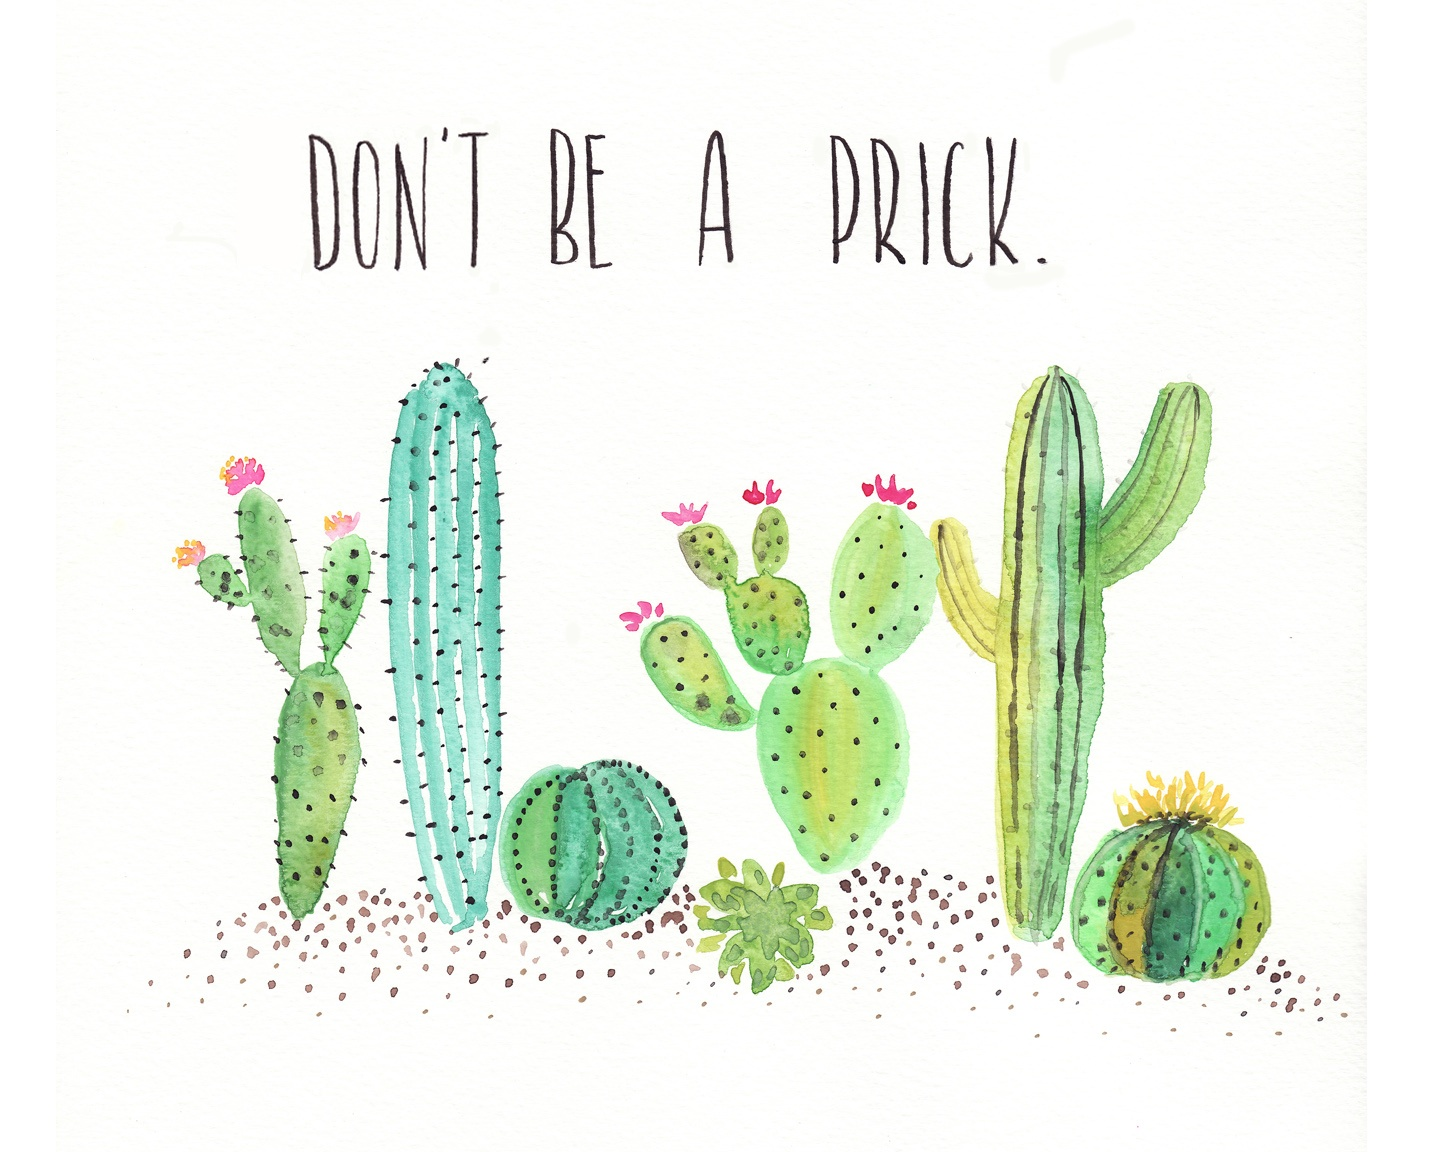 Free Watercolor Cactus Printable - One Project Closer - Free Cactus Printable